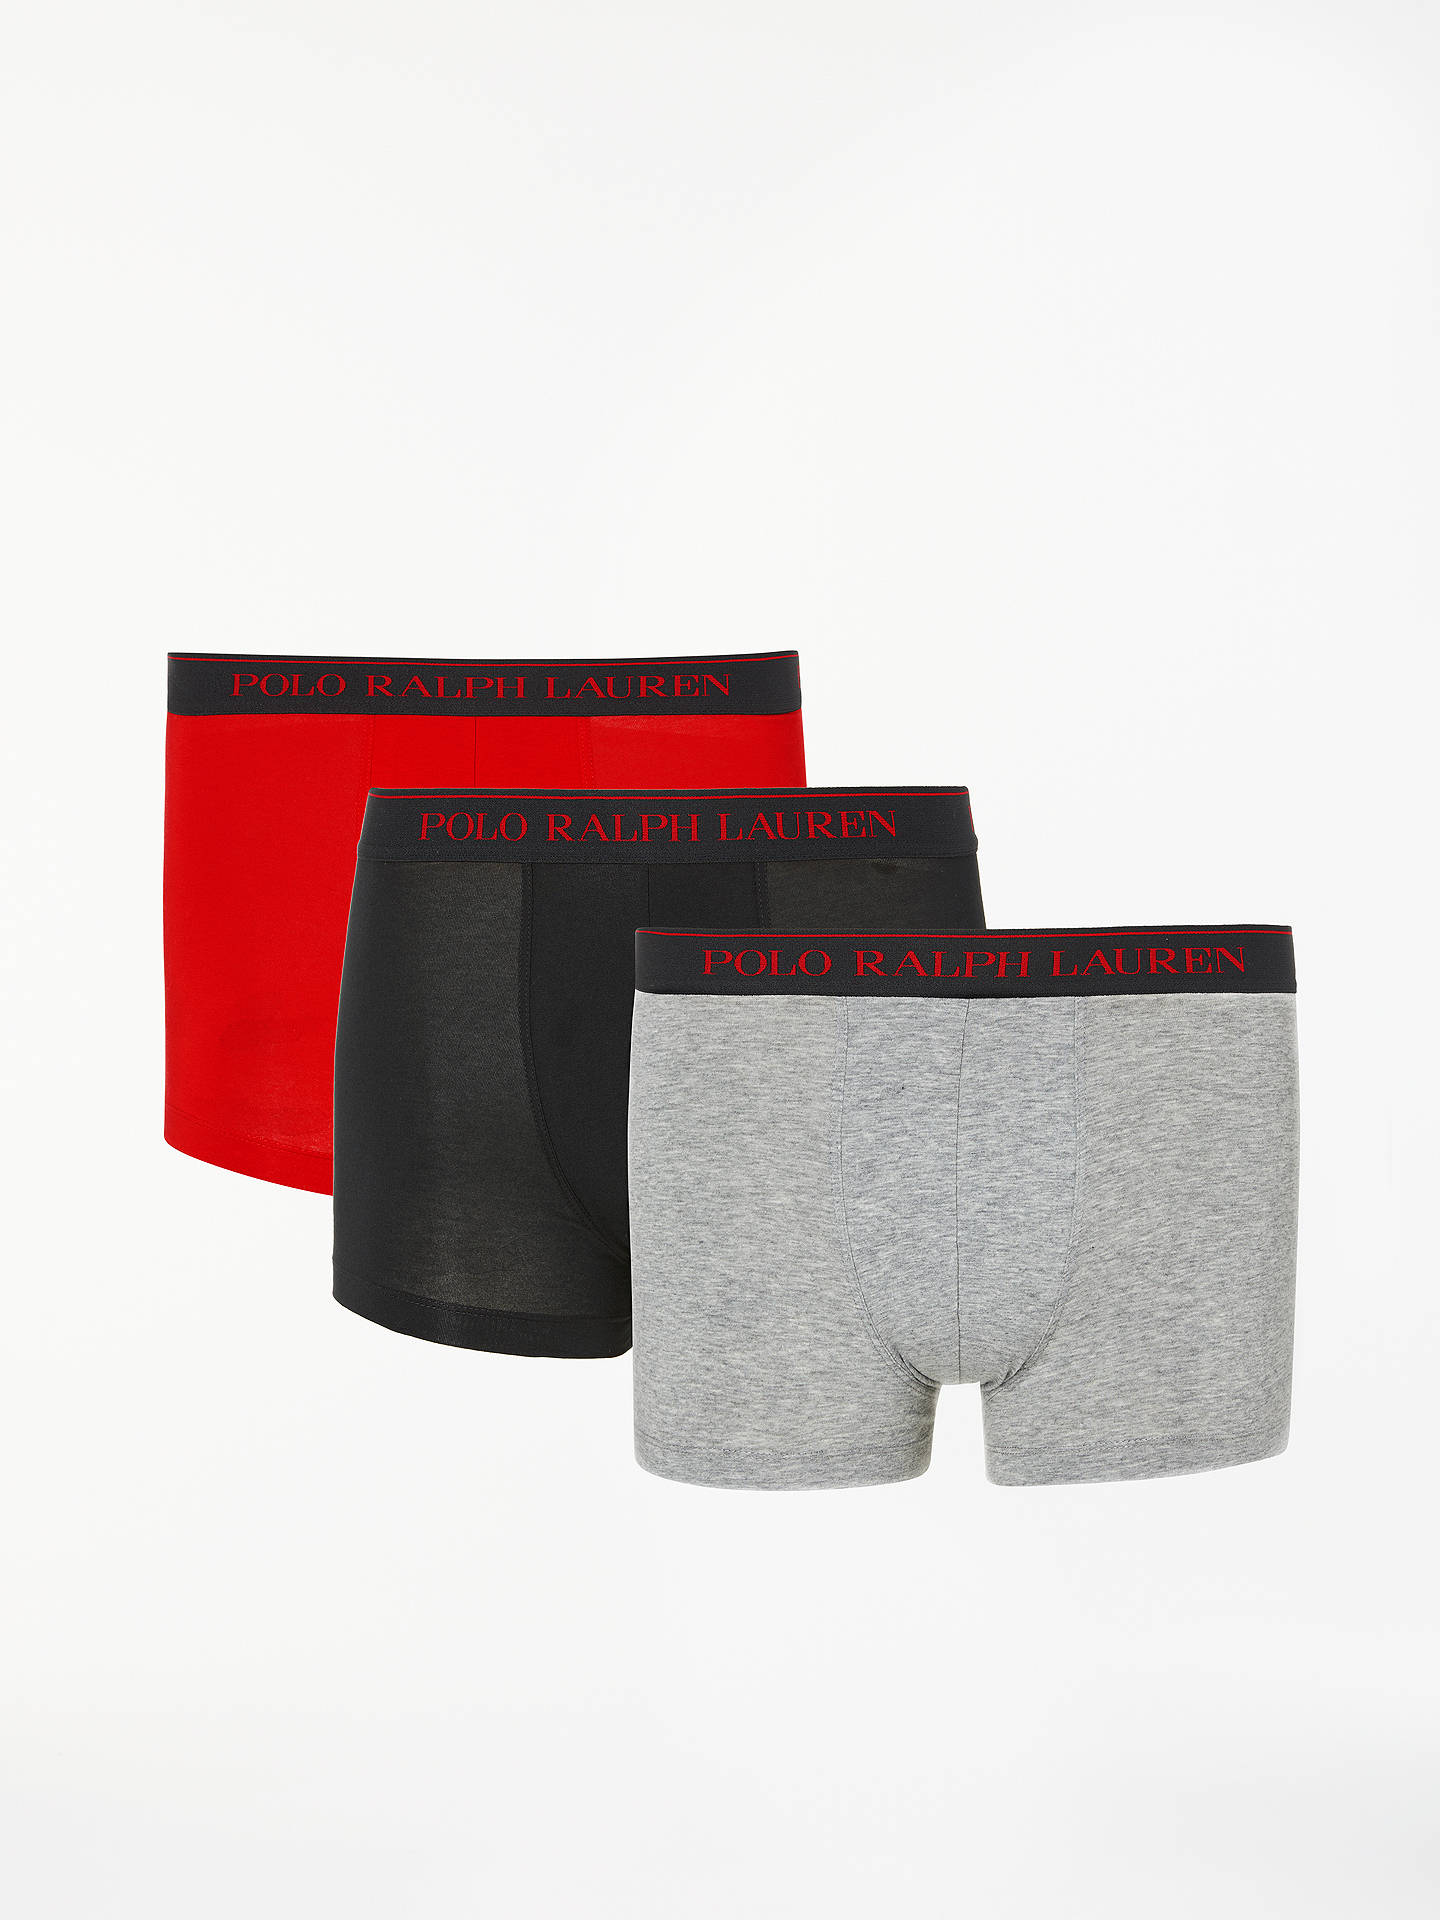 Buy Polo Ralph Lauren Cotton Trunks, Pack of 3, Red/Navy/Grey, S Online at johnlewis.com